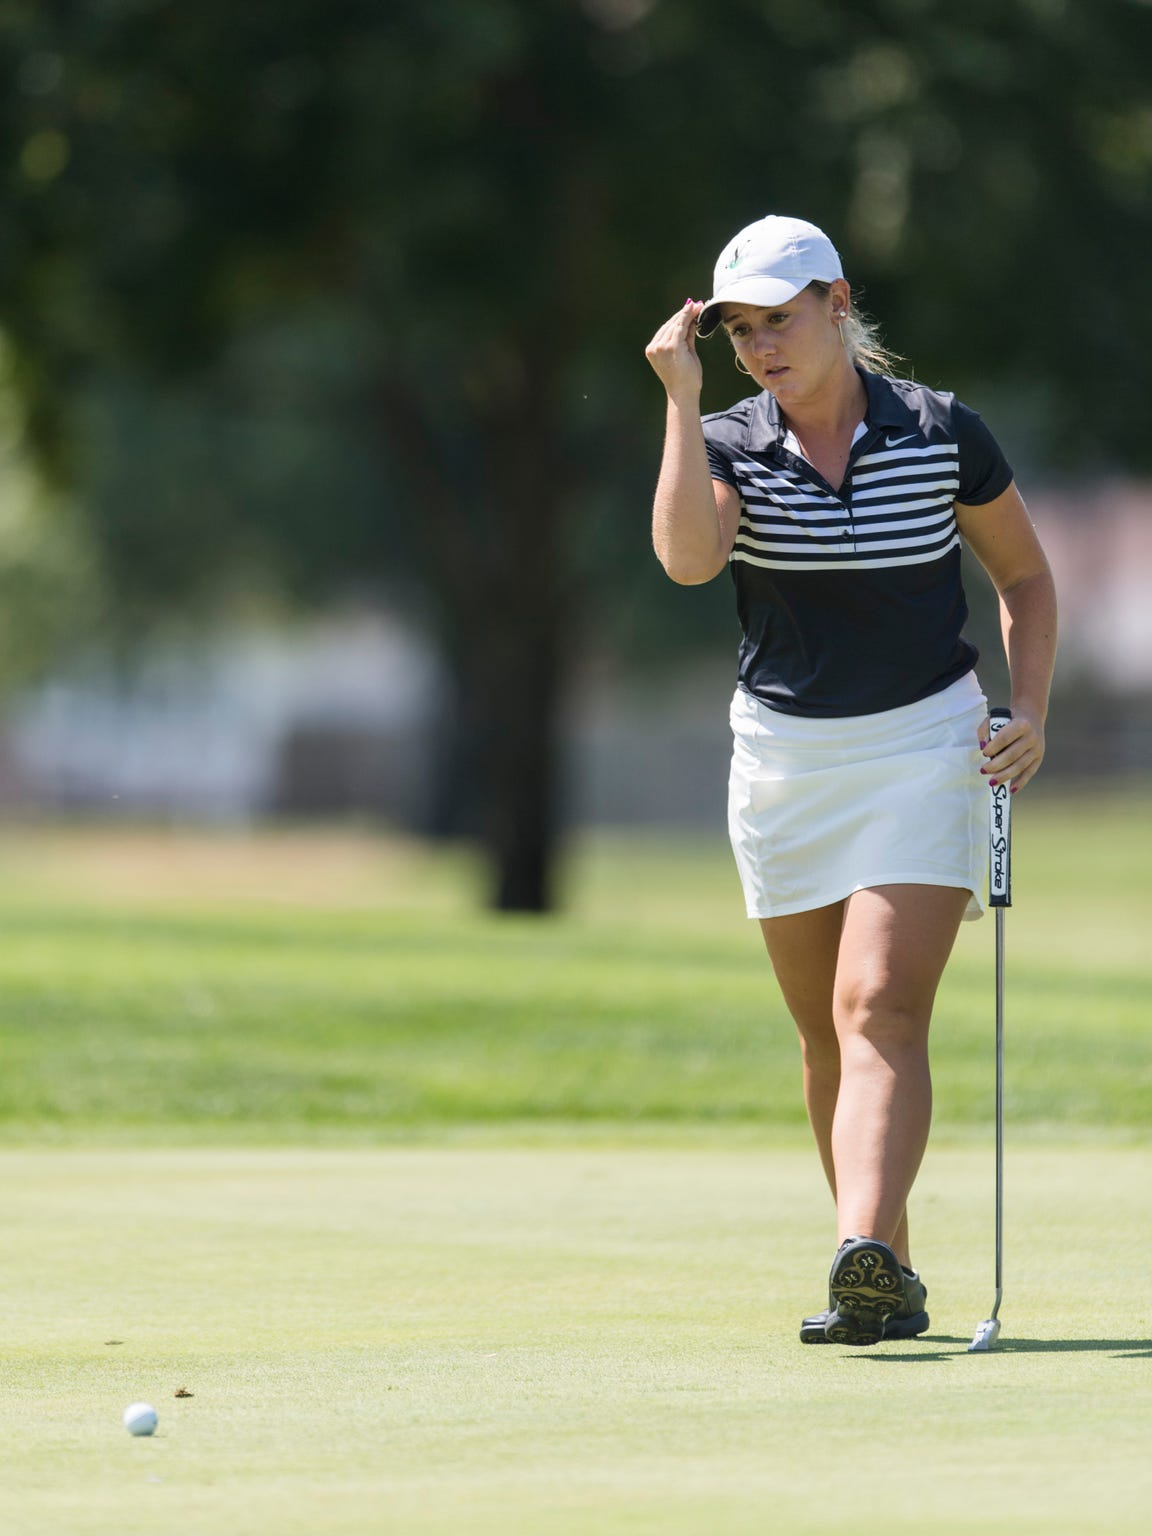 North's Hadley Walts has now been apart of four consecutive girls' golf city, SIAC, sectional and regional championship teams. She and the Huskies will go for a four-peat next weekend at the IHSAA state finals.